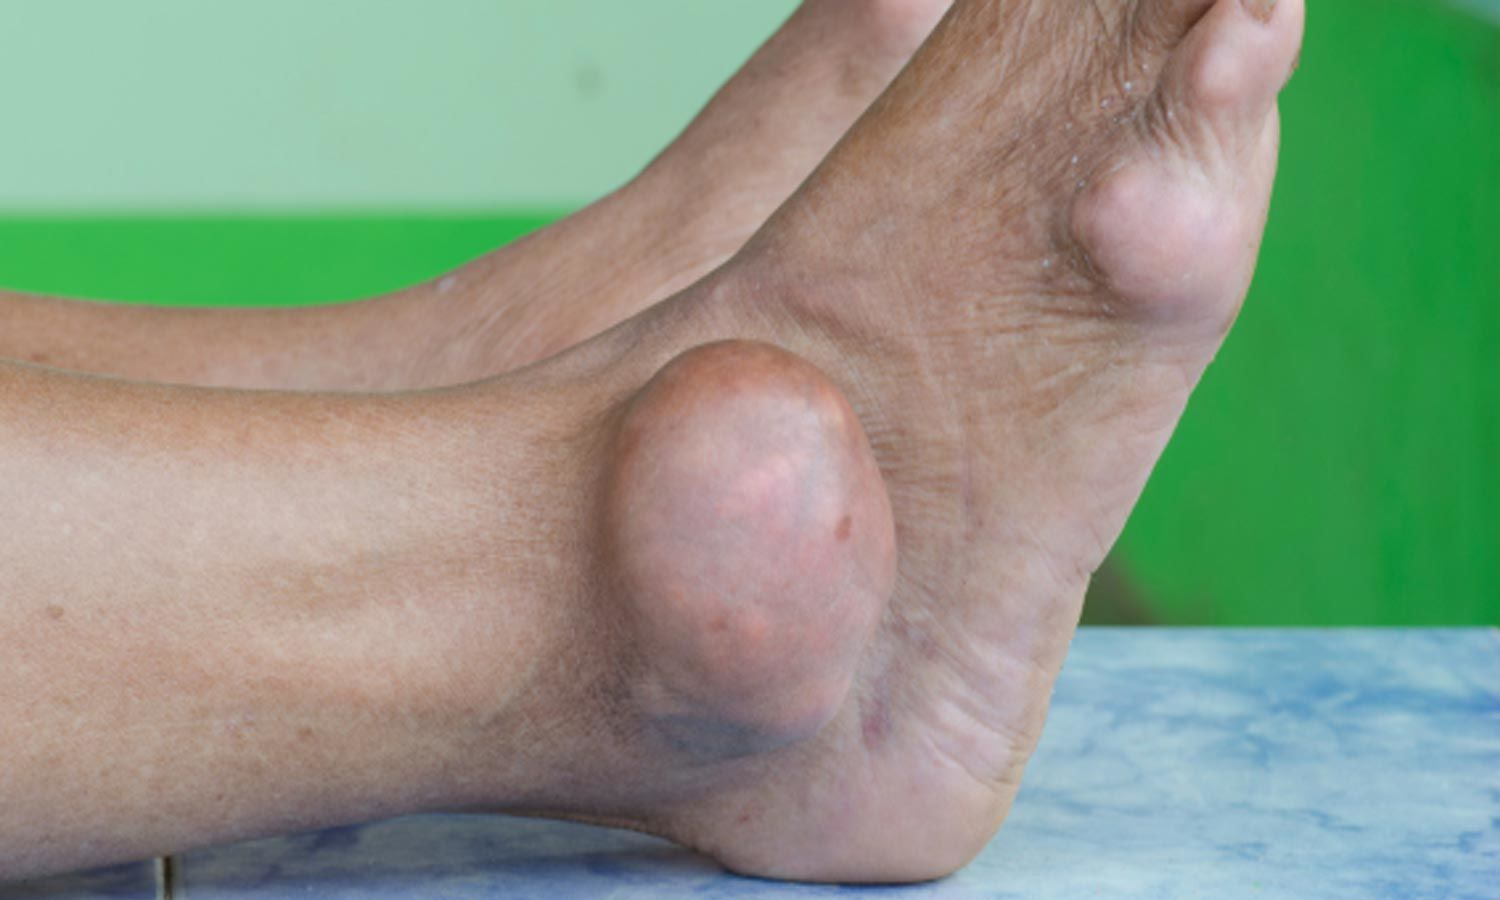 New 2020 Gout management guidelines by ACR